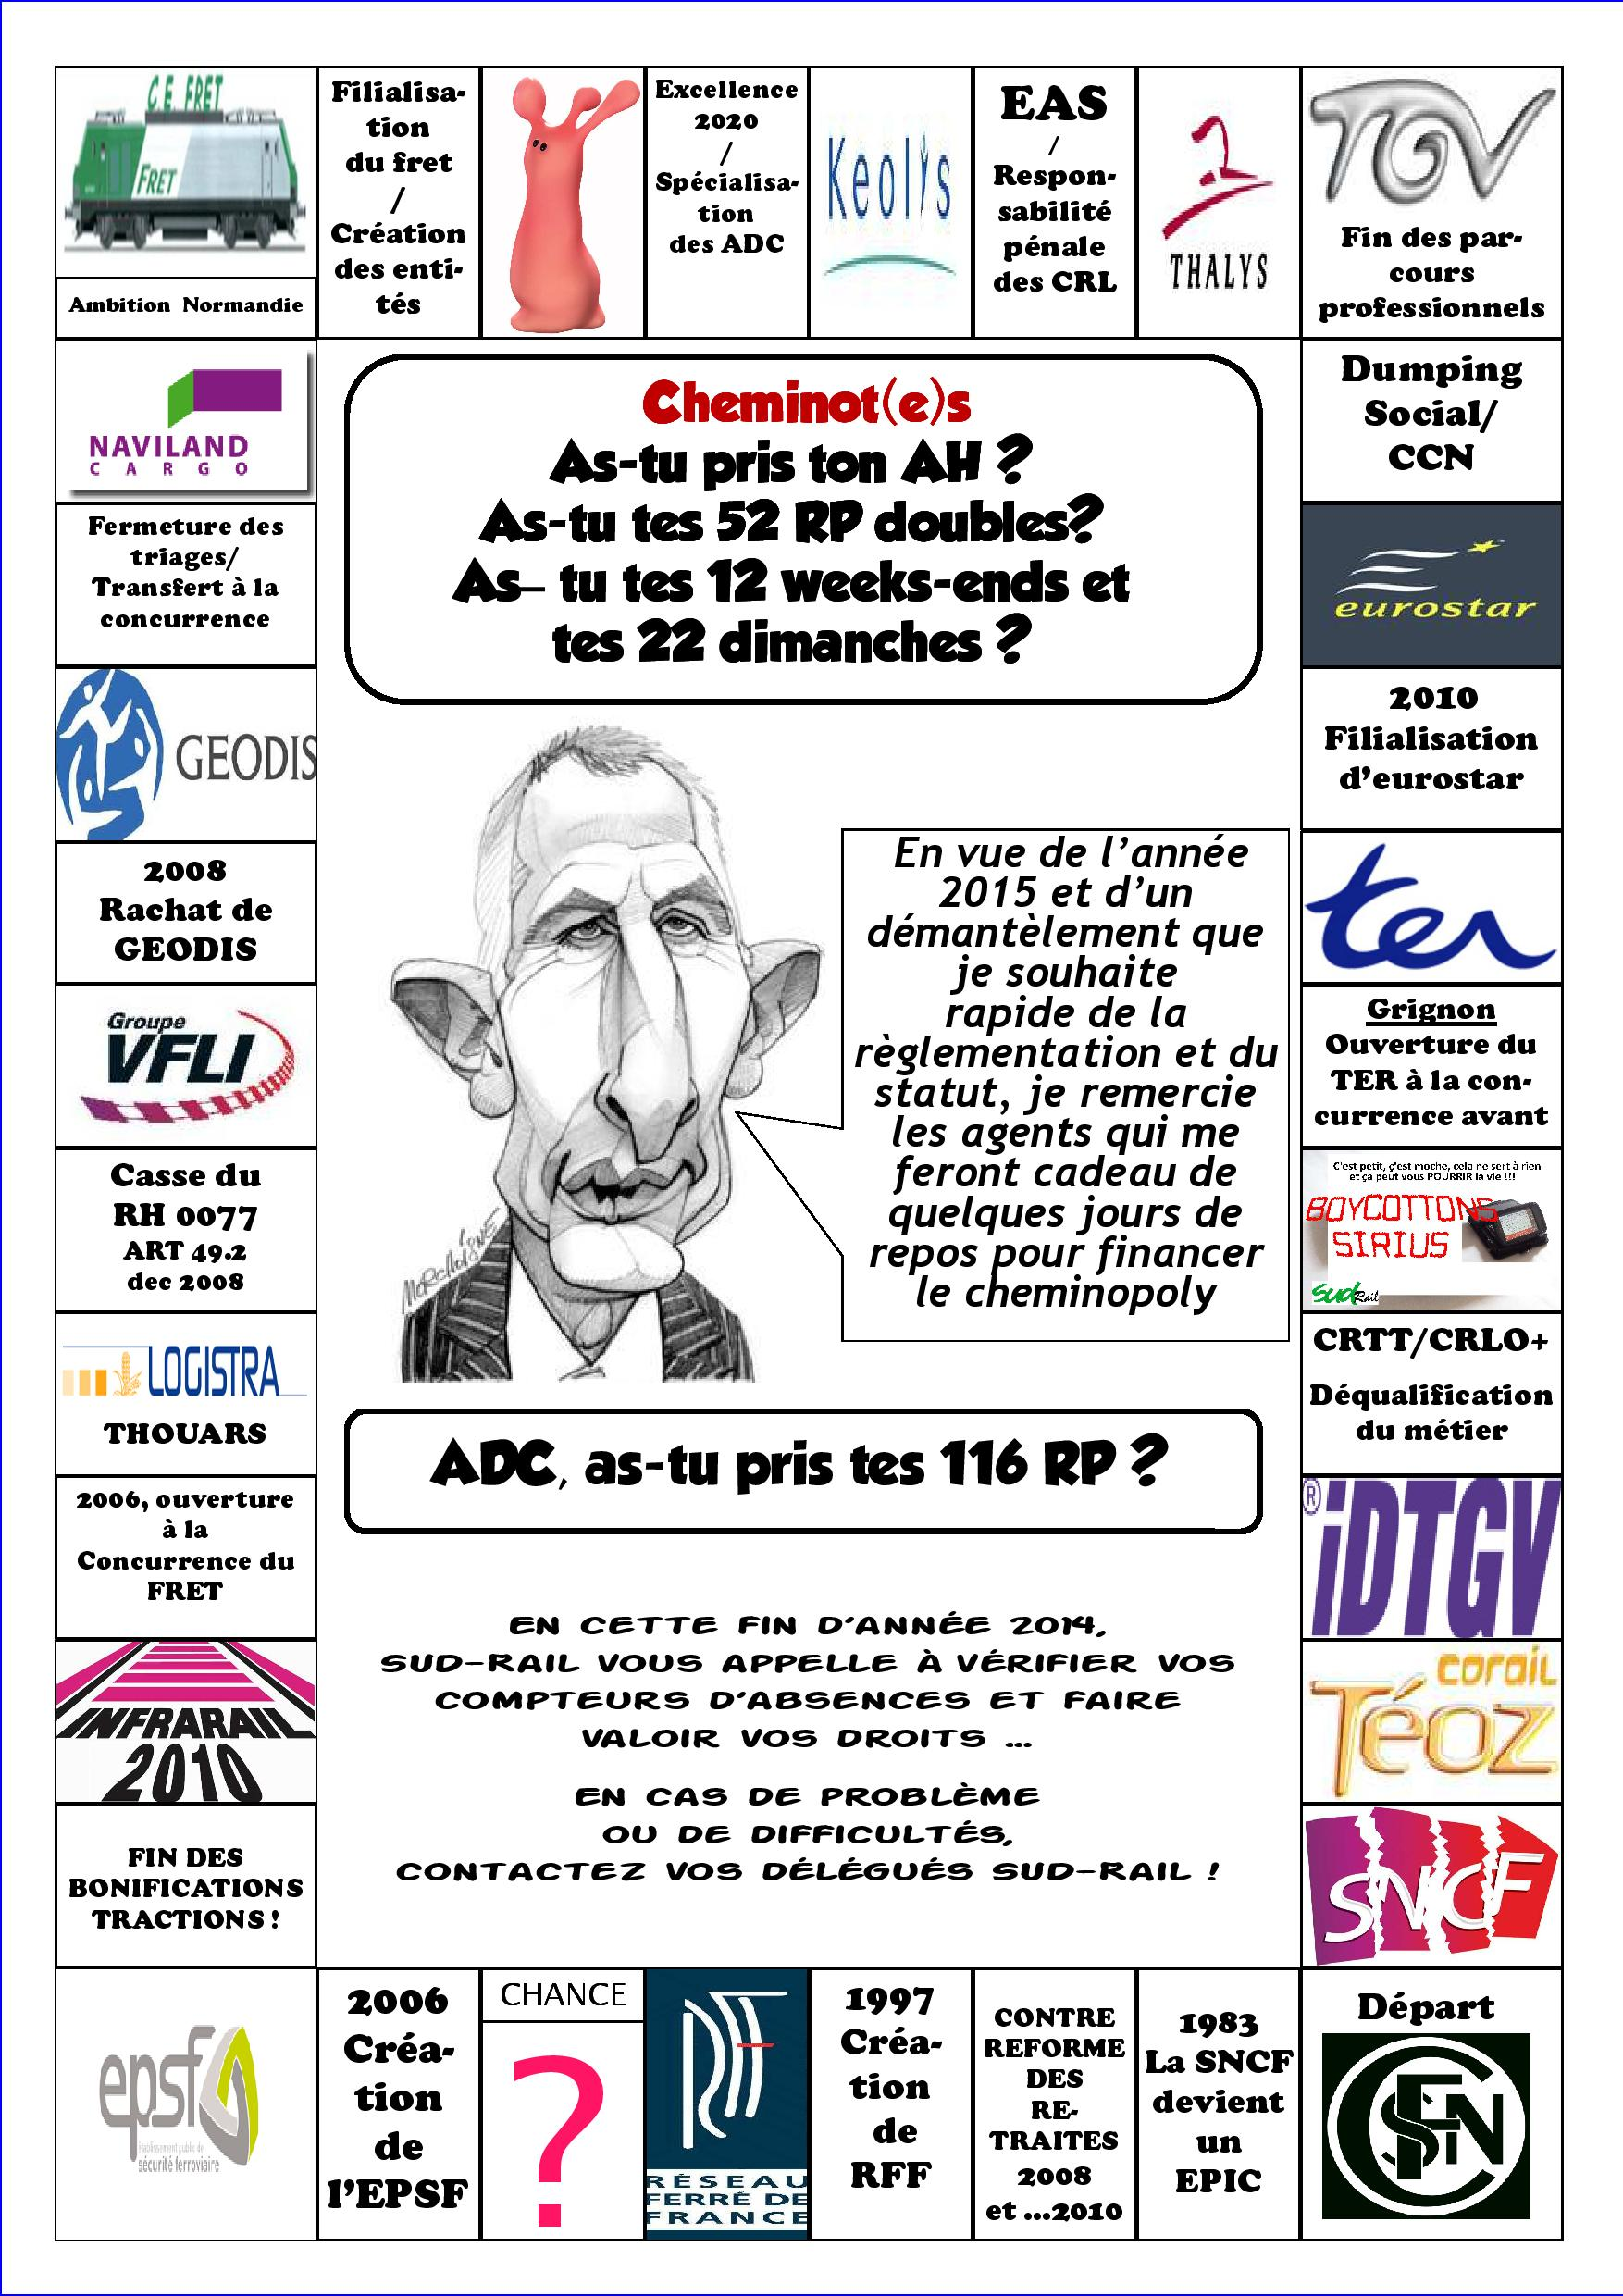 LNADC.affiche.RP.fin.annee 2014-page-001